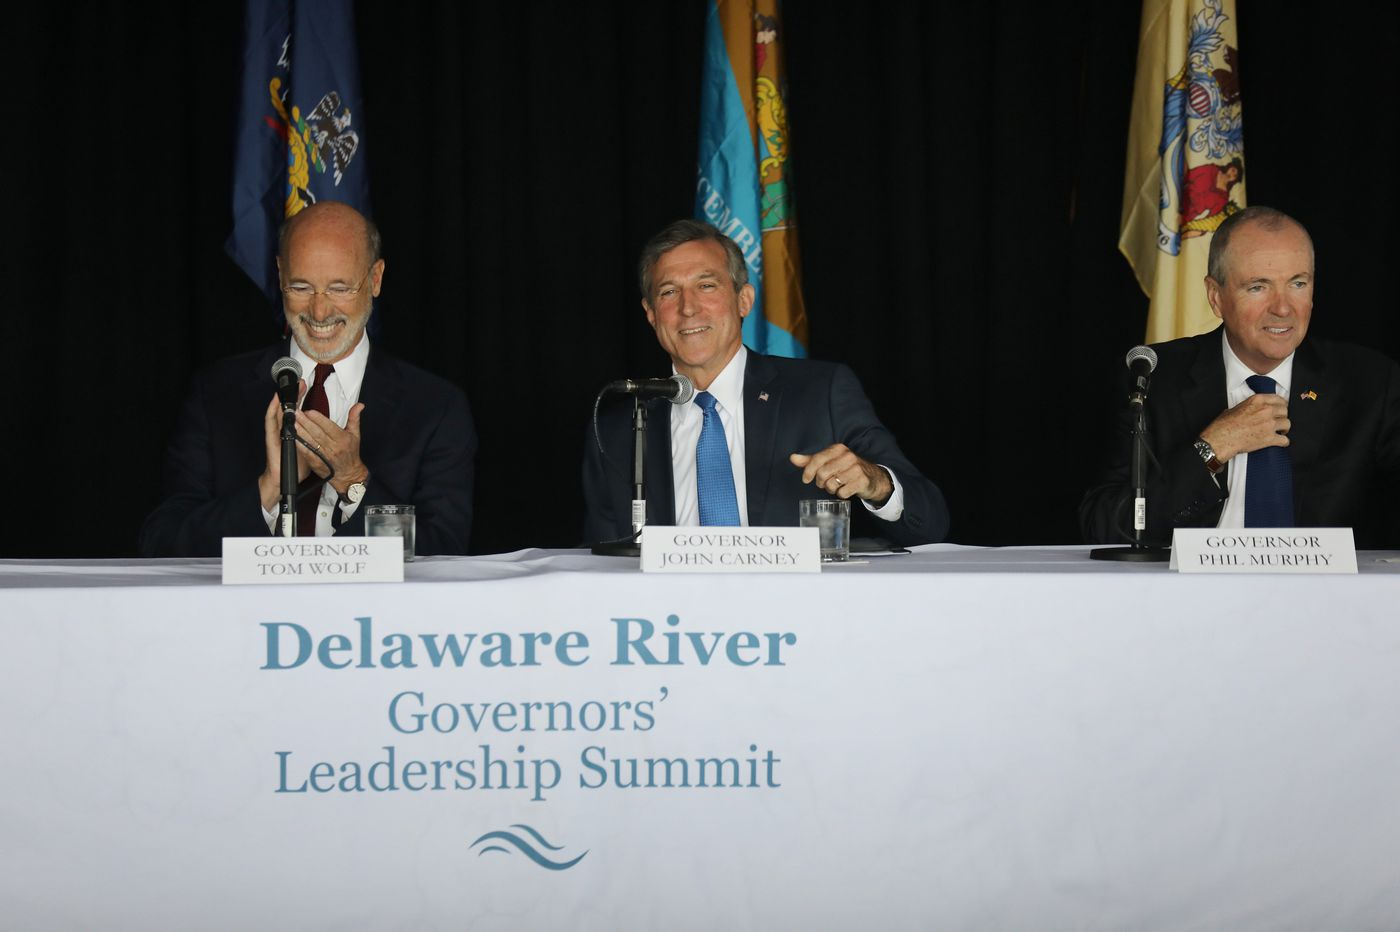 Pa., N.J., and Del. governors meet in Philadelphia, commit to health of Delaware River